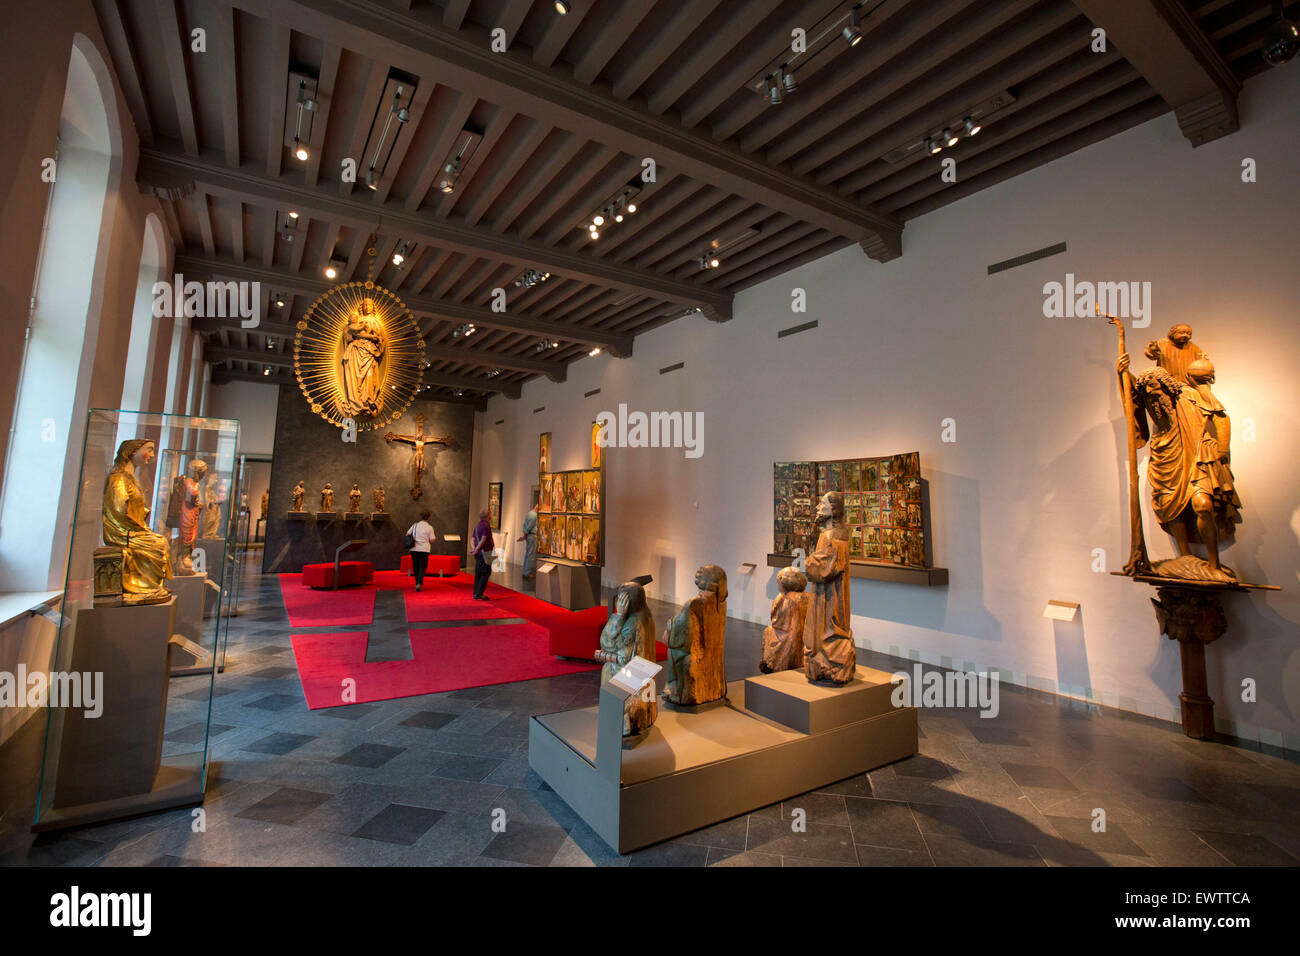 St. Catherine museum, Utrecht, Holland - Stock Image